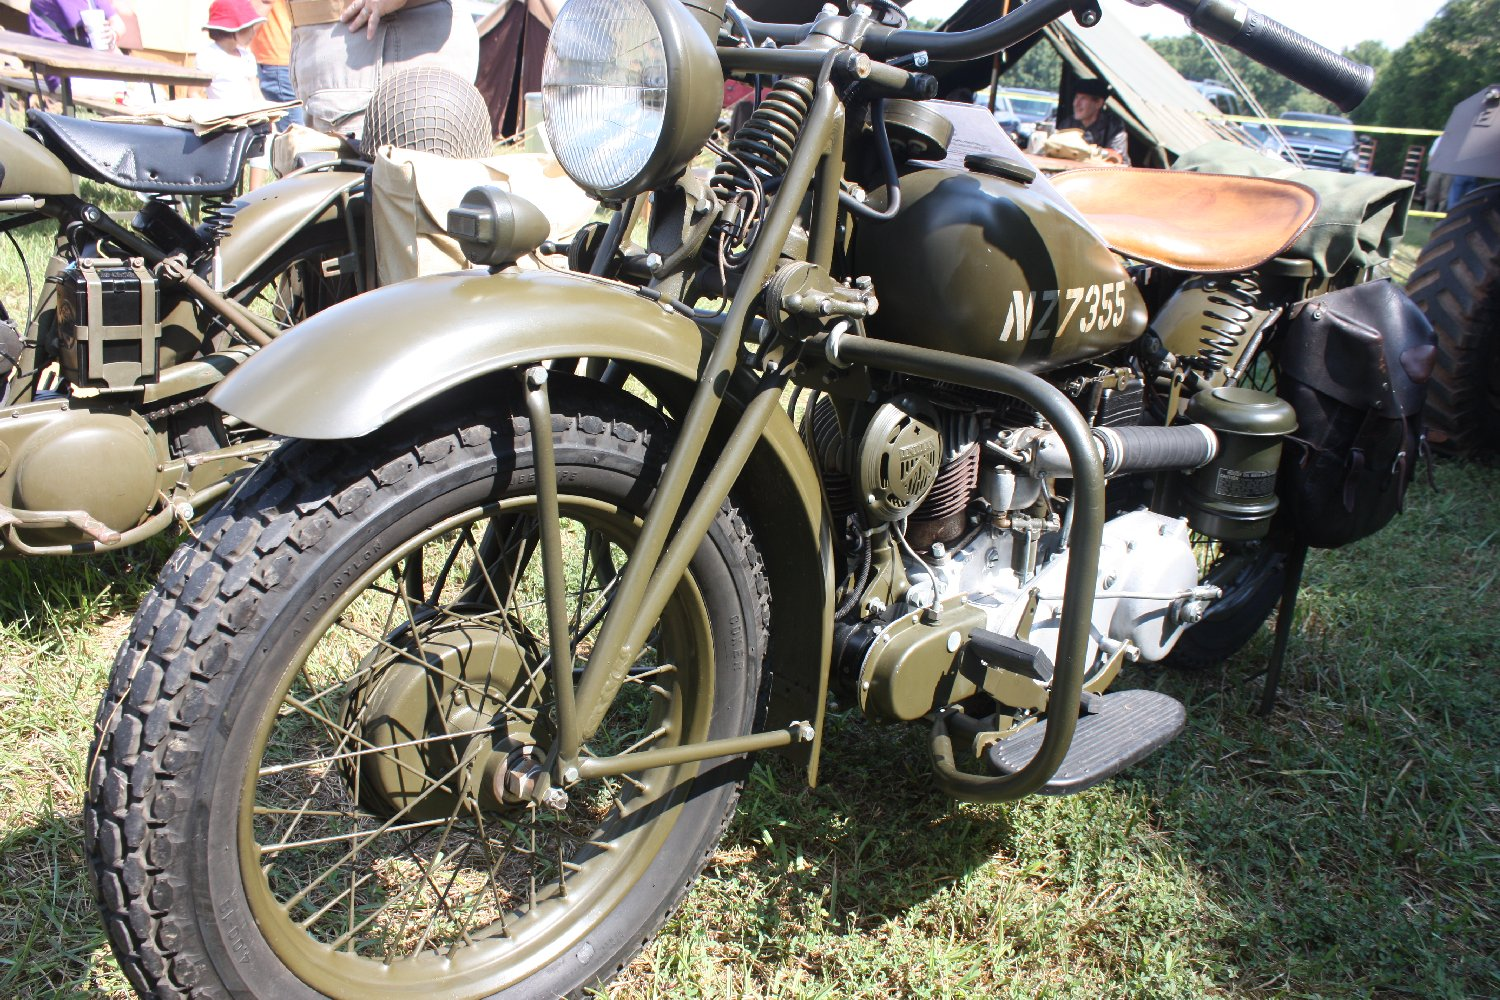 1941 Model 741 B Indian Military Motorcycle Hampton